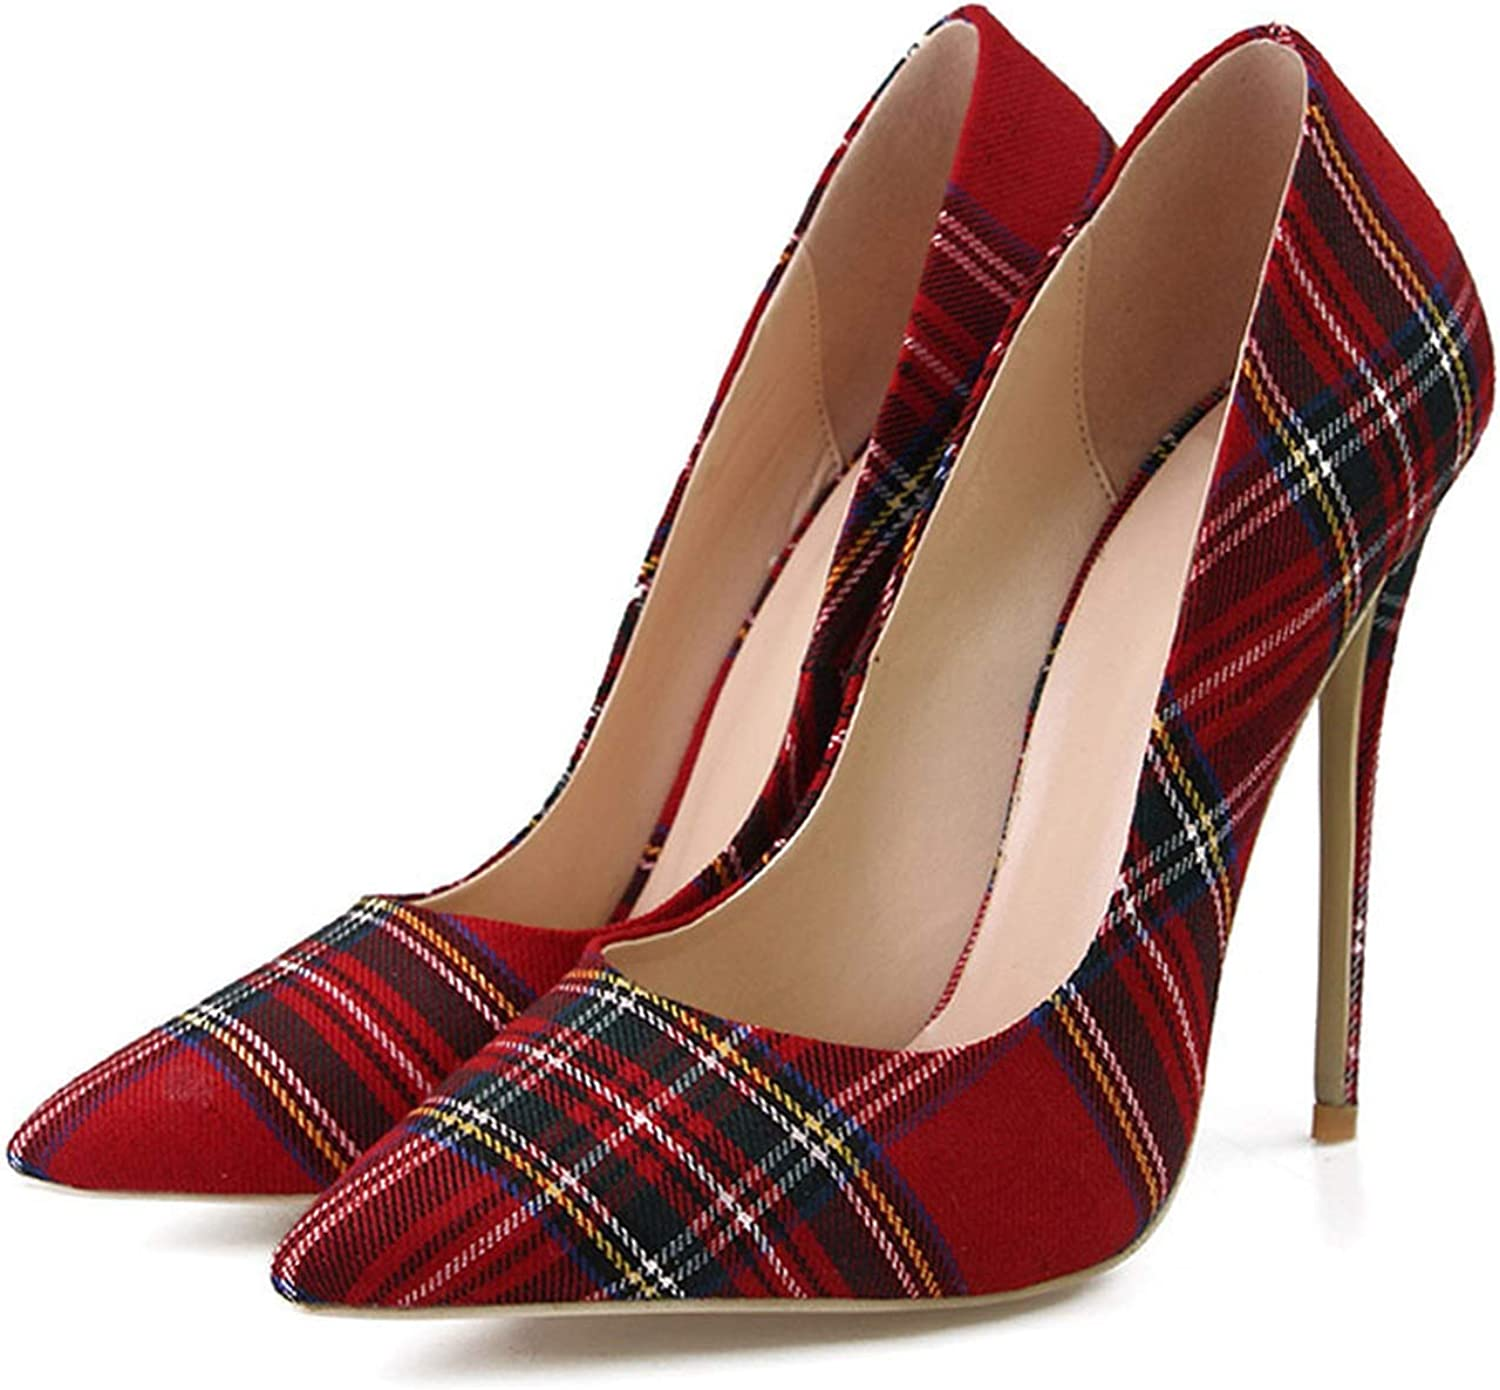 colorful Dream- Stiletto Heels Women Pumps Red Pointed Plaid Shallow High Thin Heels 2019 Party Wedding shoes